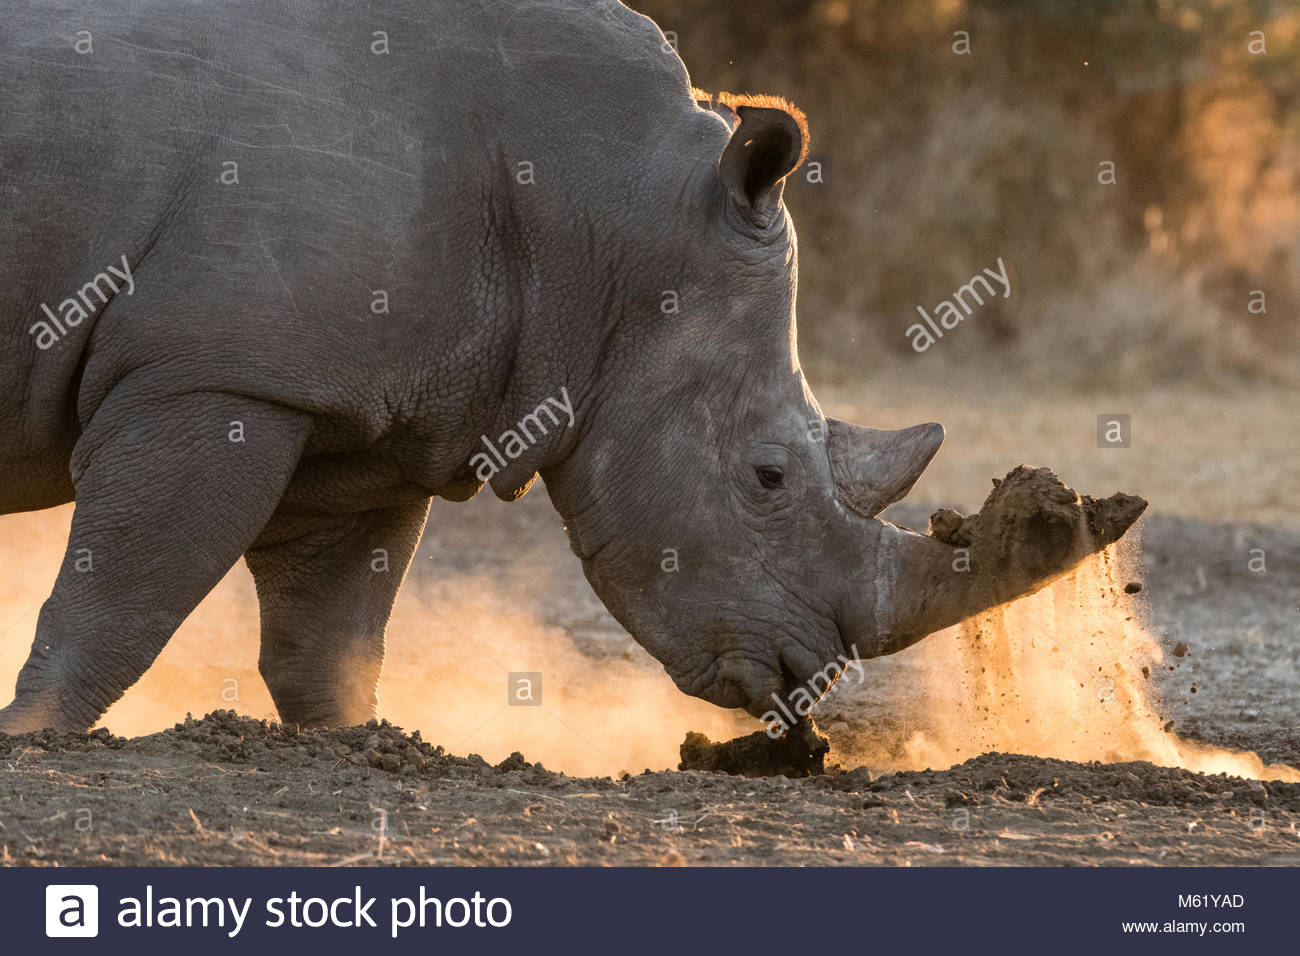 A white rhinoceros, Ceratotherium simum, digging with its horn. - Stock Image